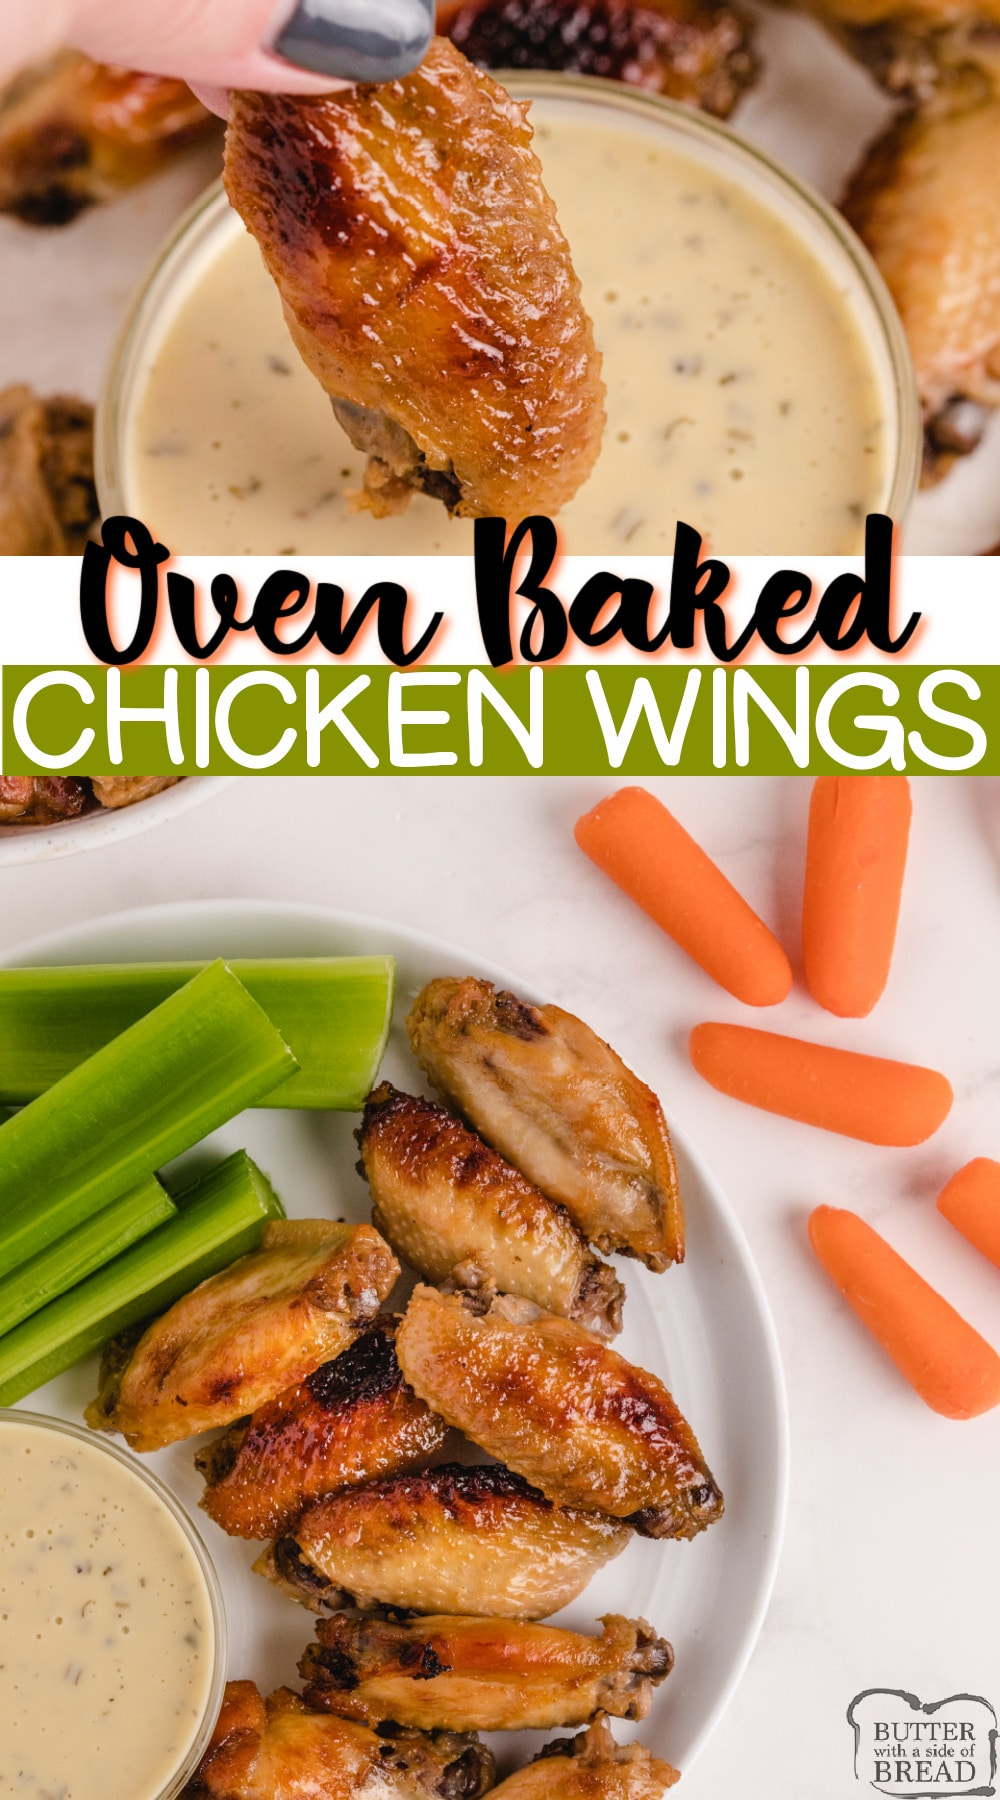 Oven Baked Chicken Wings are perfect for an appetizer, side dish or even the main course. These baked chicken wings are marinated overnight so they are tender, juicy and packed with flavor!